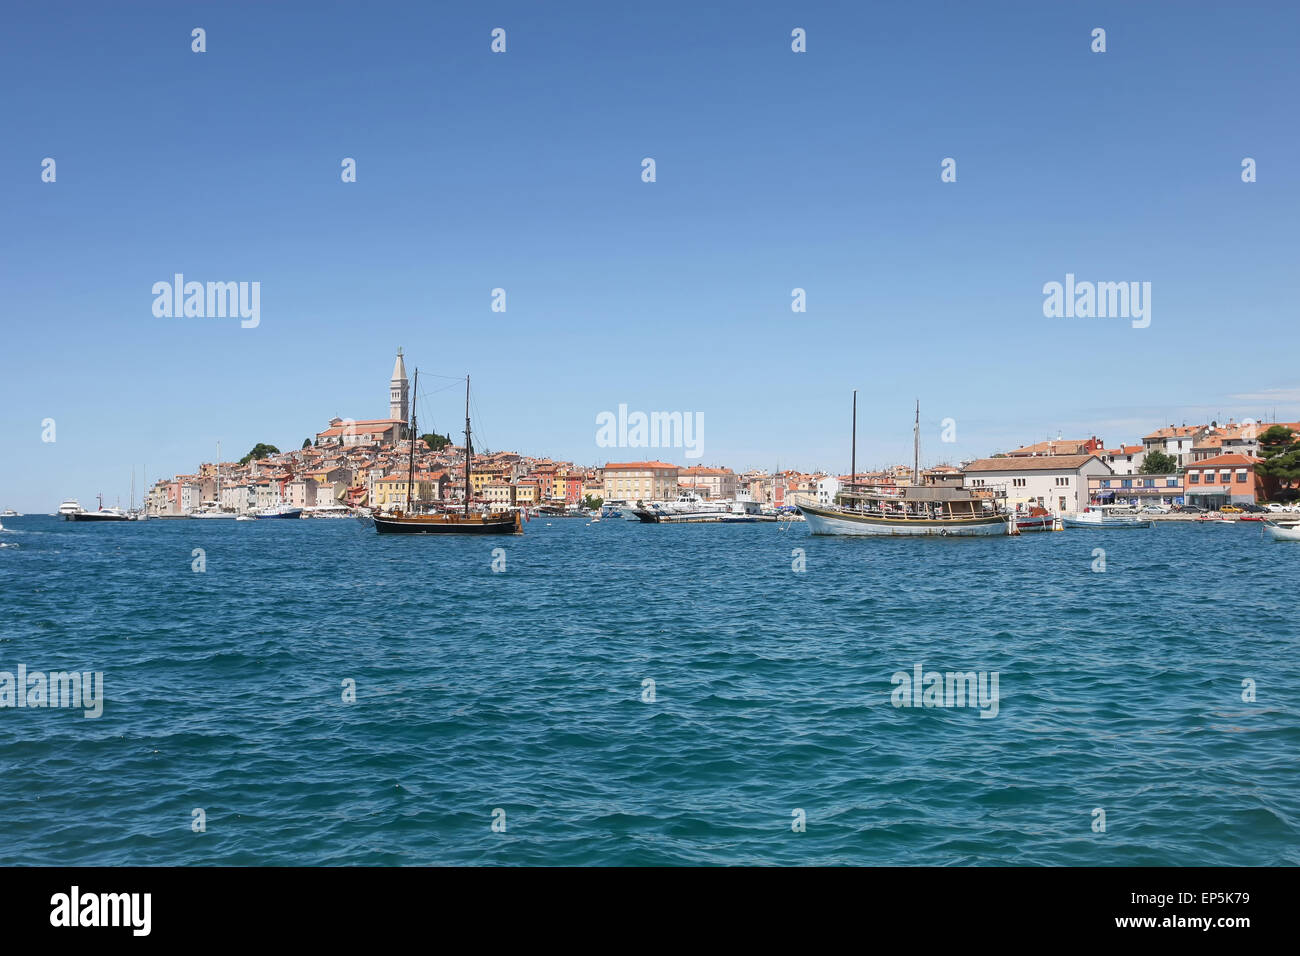 Ships anchored in the Adriatic sea and the old city core with the Saint Euphemia church in the background in Rovinj, - Stock Image